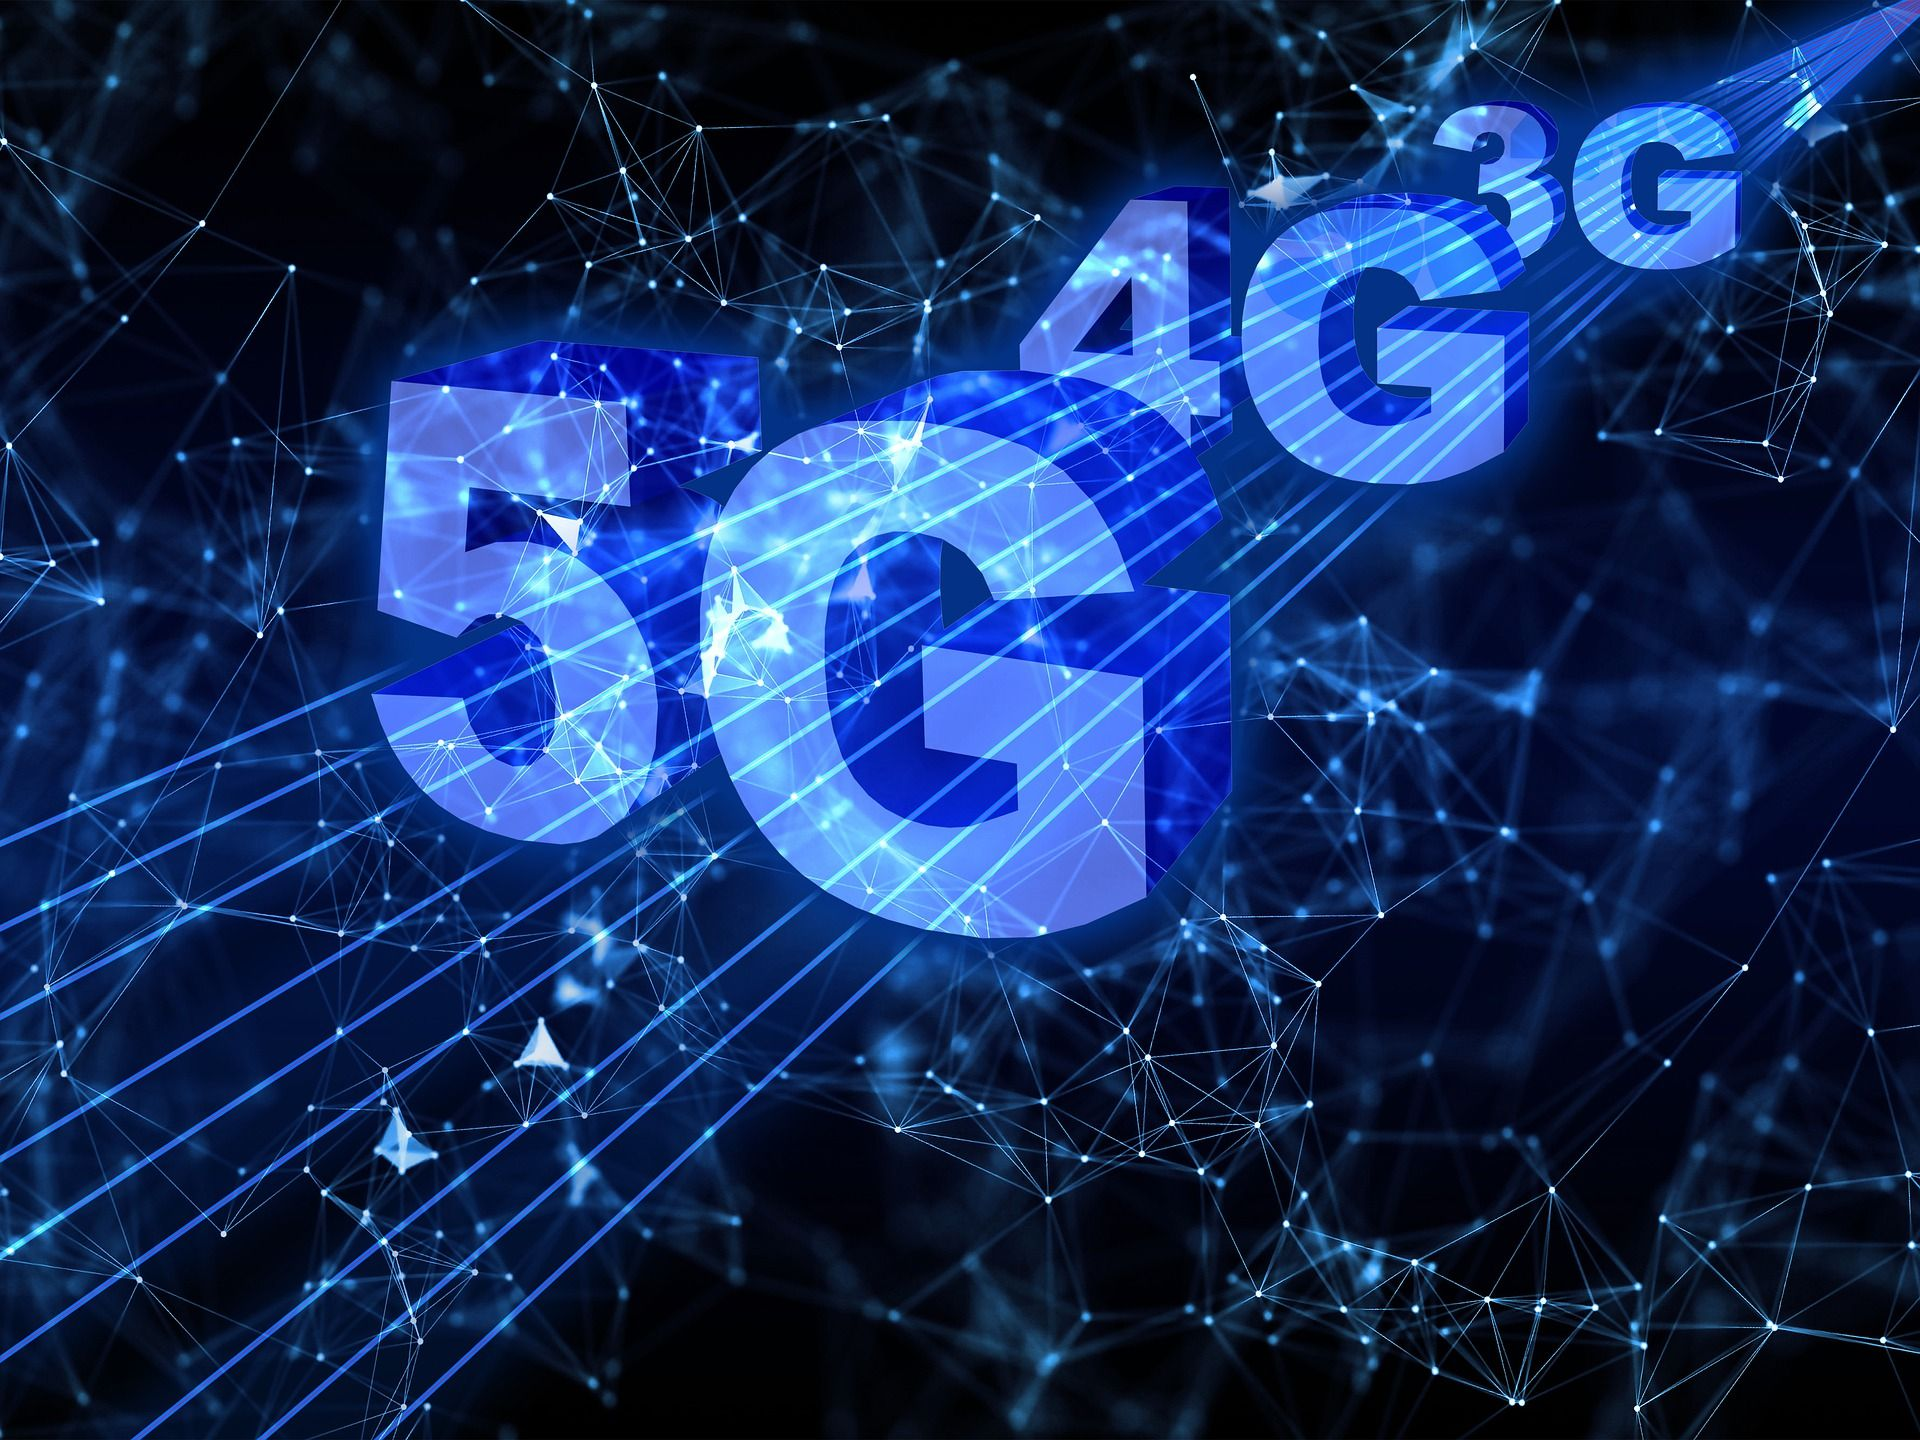 /why-5g-security-will-suffer-from-4g-vulnerabilities-6d7p3utn feature image